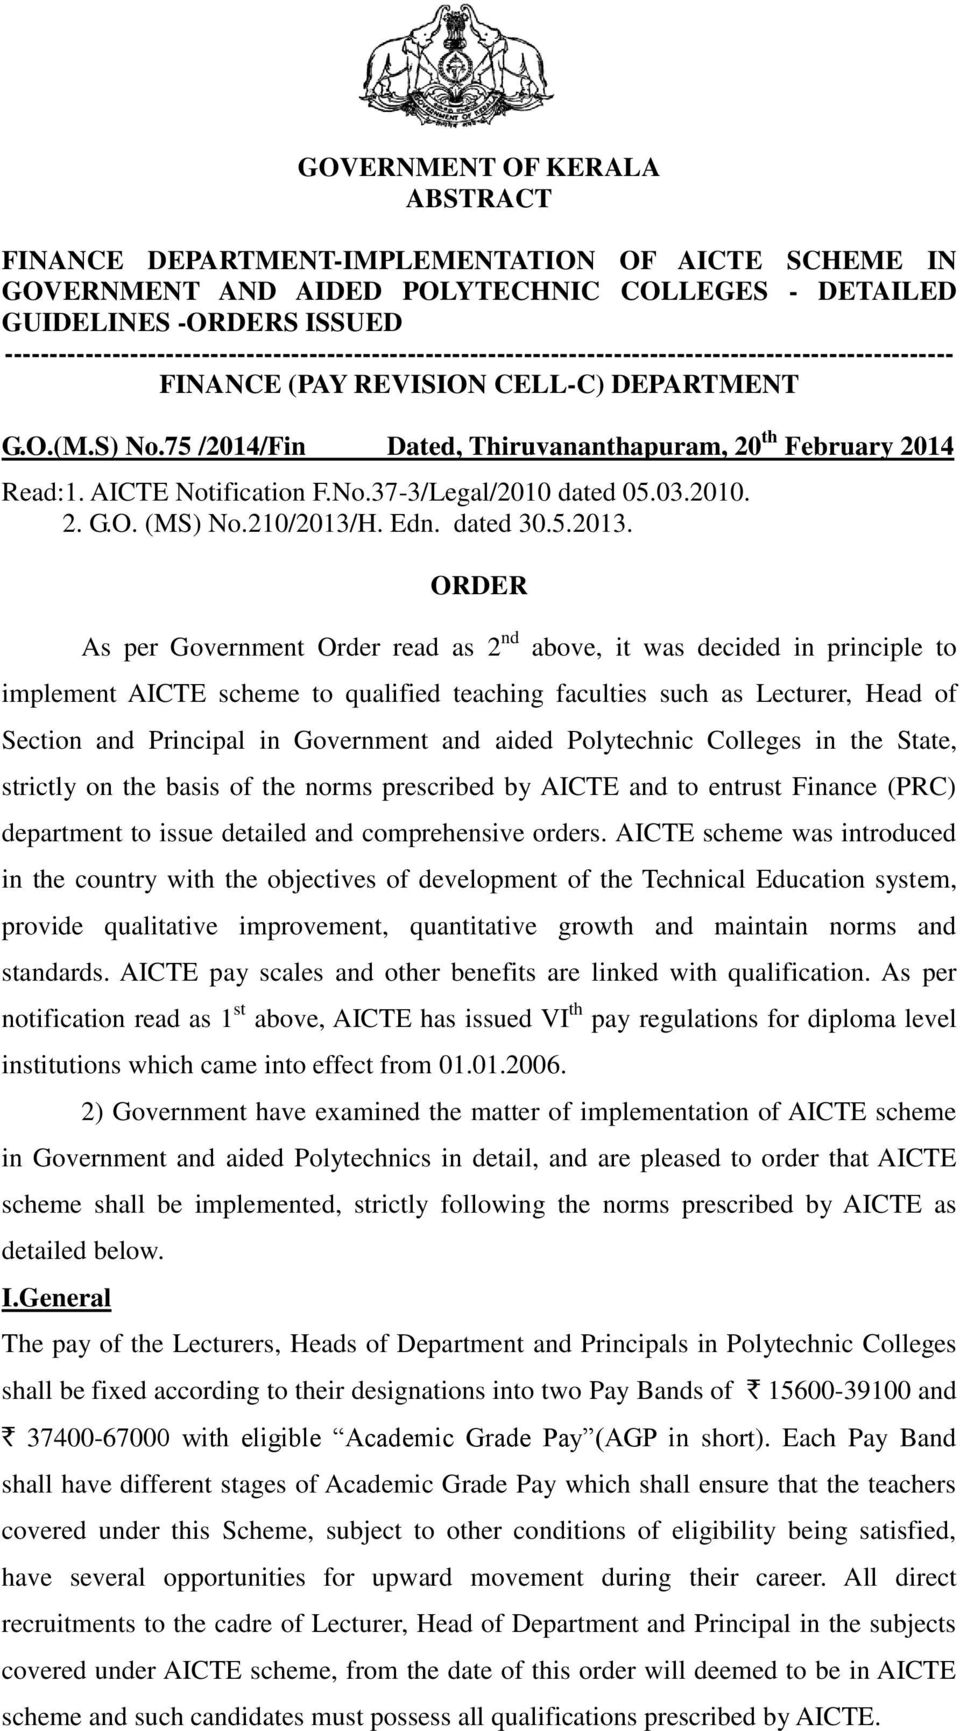 75 /2014/Fin Dated, Thiruvananthapuram, 20 th February 2014 Read:1. AICTE Notification F.No.37-3/Legal/2010 dated 05.03.2010. 2. G.O. (MS) No.210/2013/